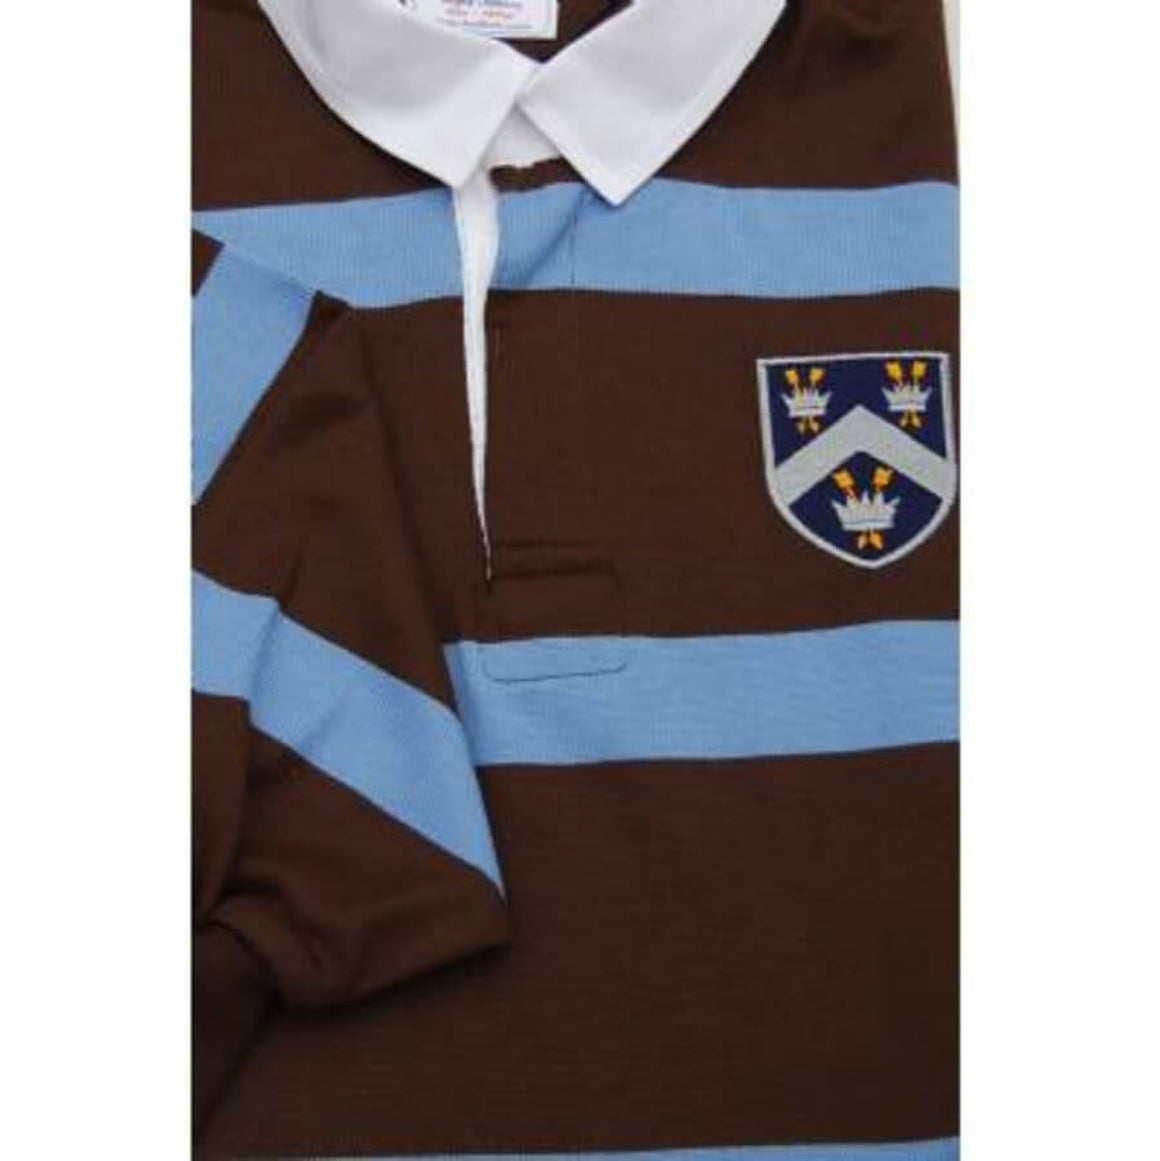 Old Framlinghamian Crested Rugby Shirt